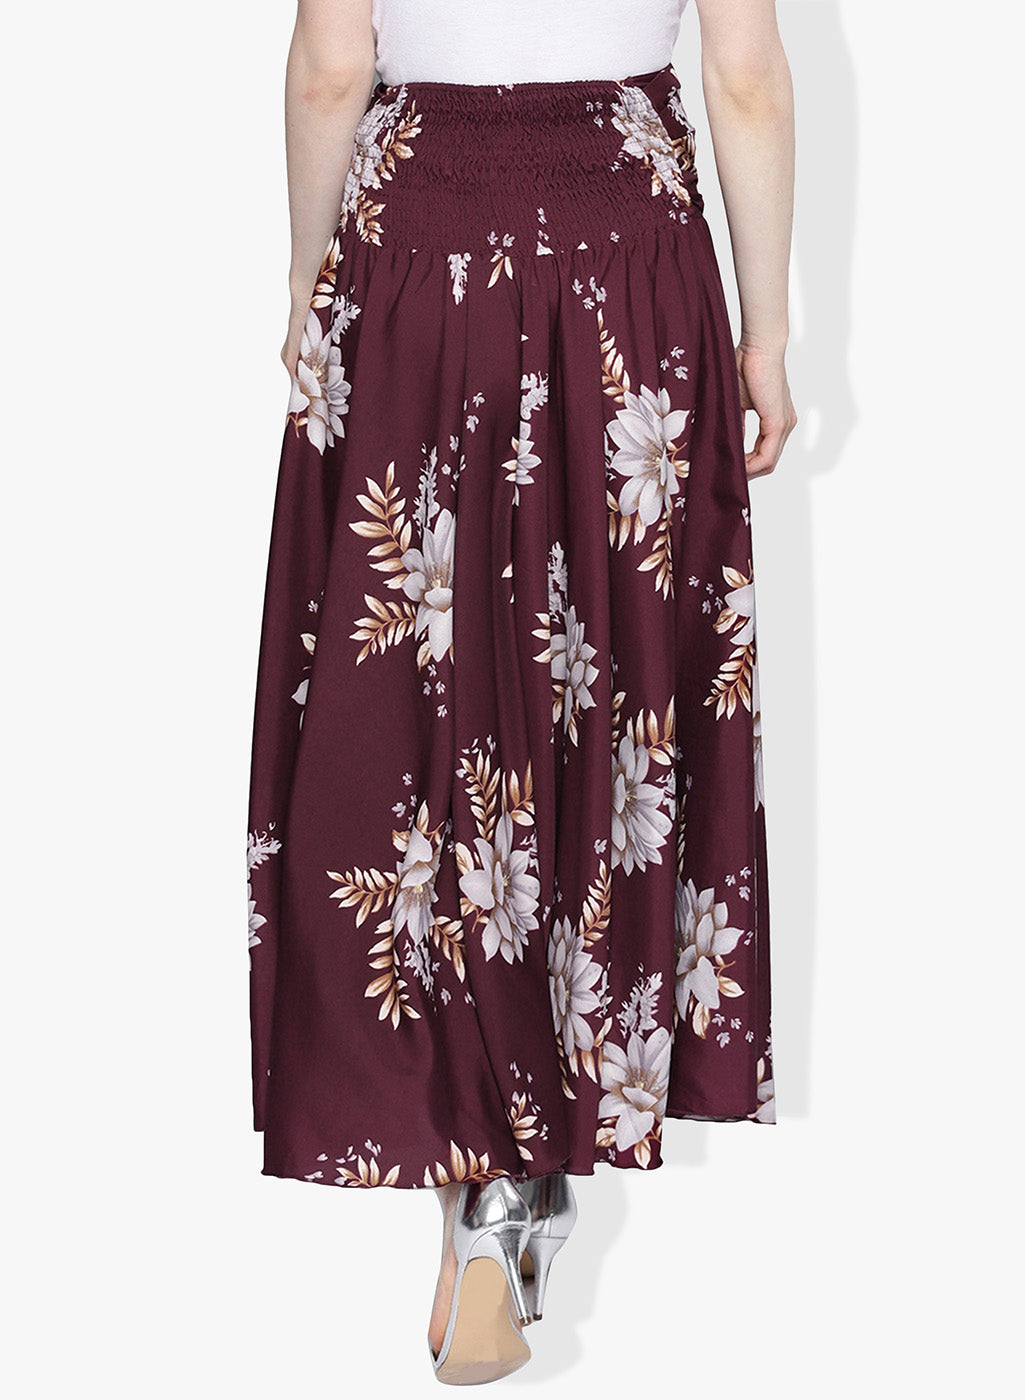 Floral Print Burgundy palazzo